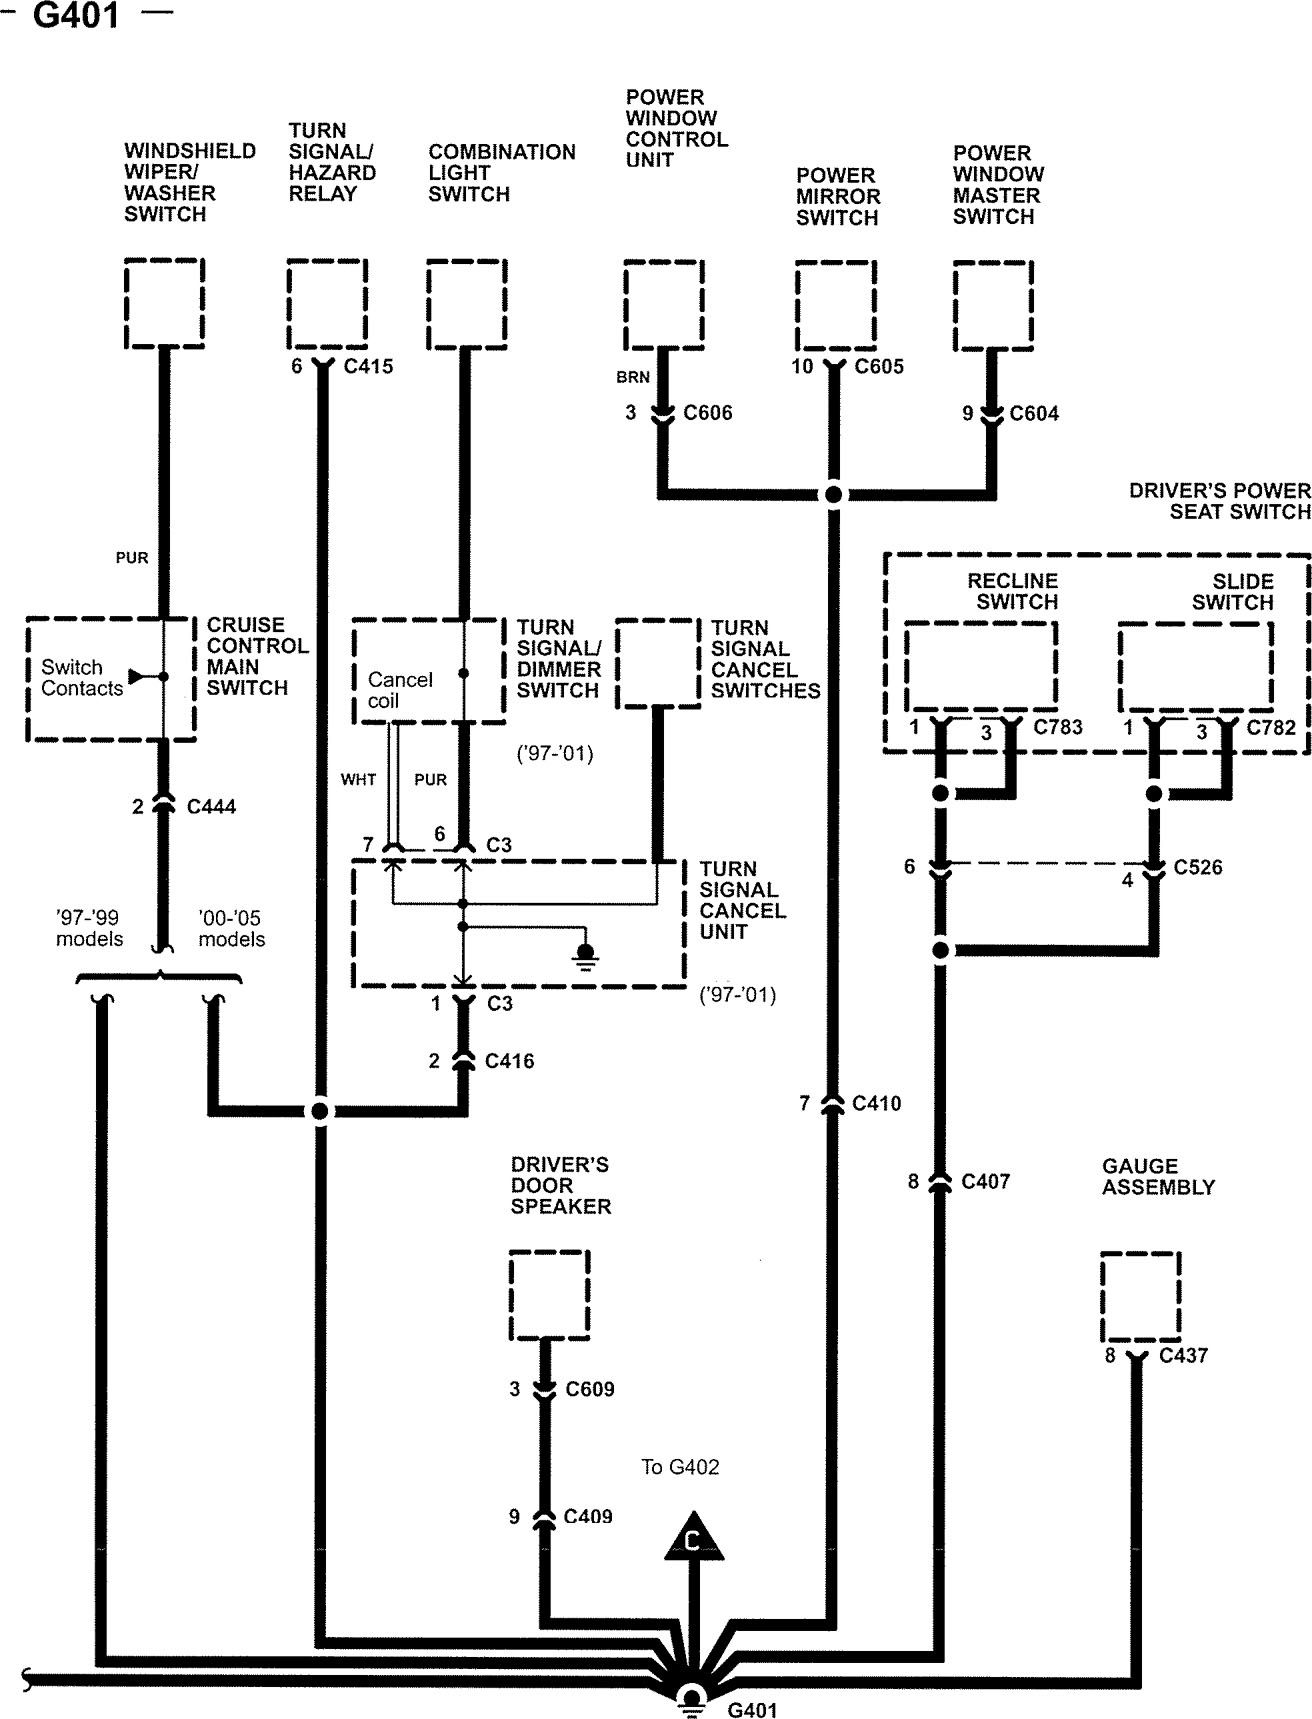 2005 scion xa electrical wiring diagrams 2004 mazda 3